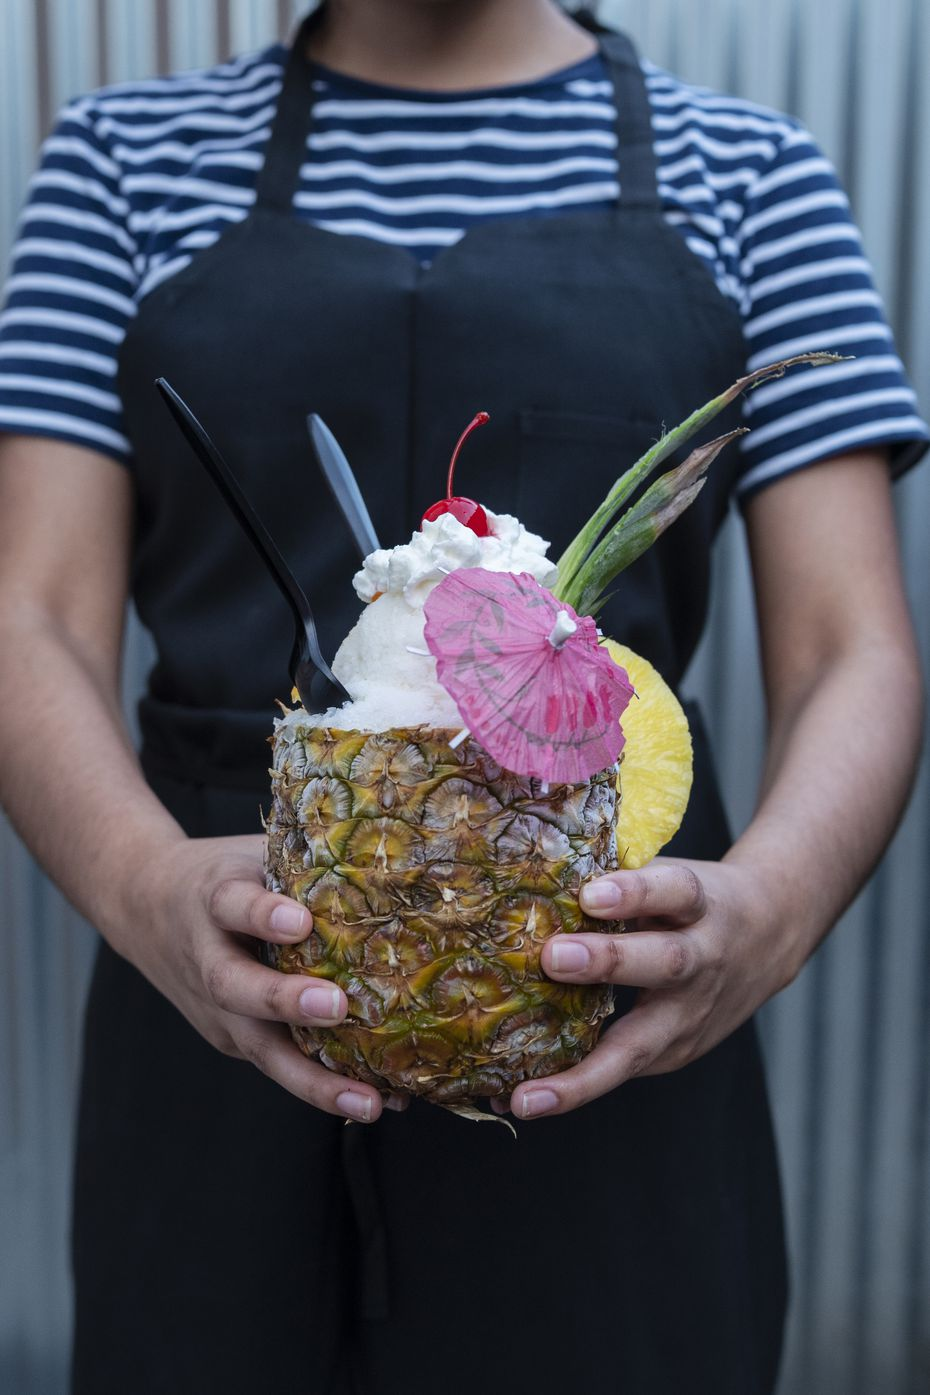 The pina alotta is made with house made pineapple and coconut syrup, whipped cream and vanilla ice cream, all served inside a pineapple. You have to admit, it's a good name.